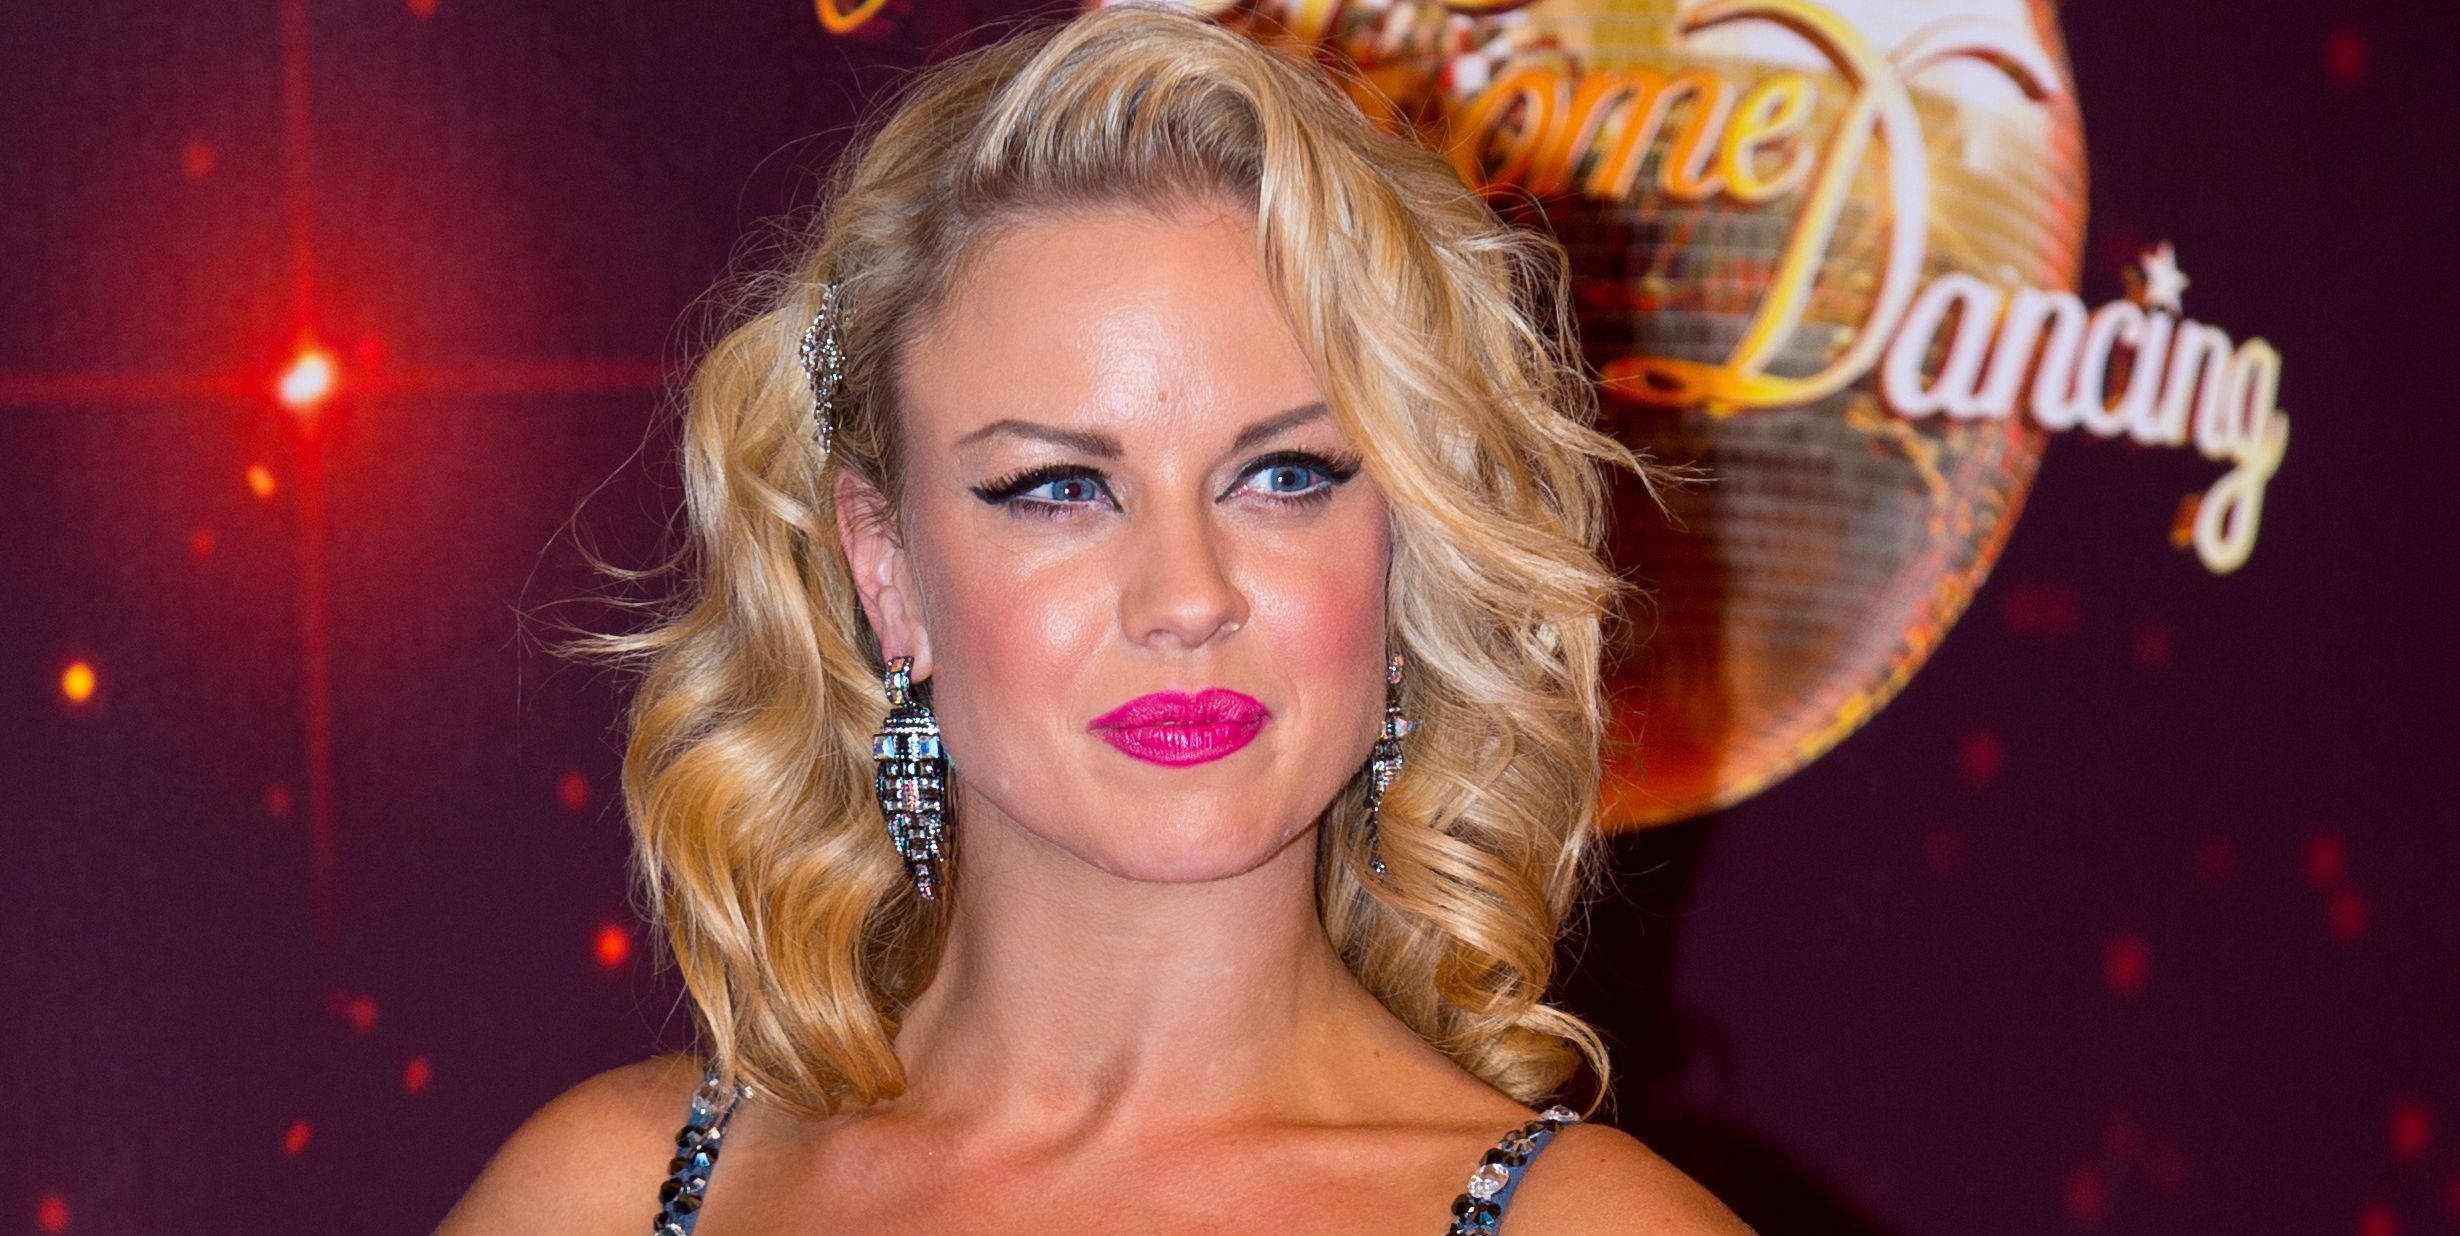 Joanne Clifton on the Strictly Come Dancing red carpet